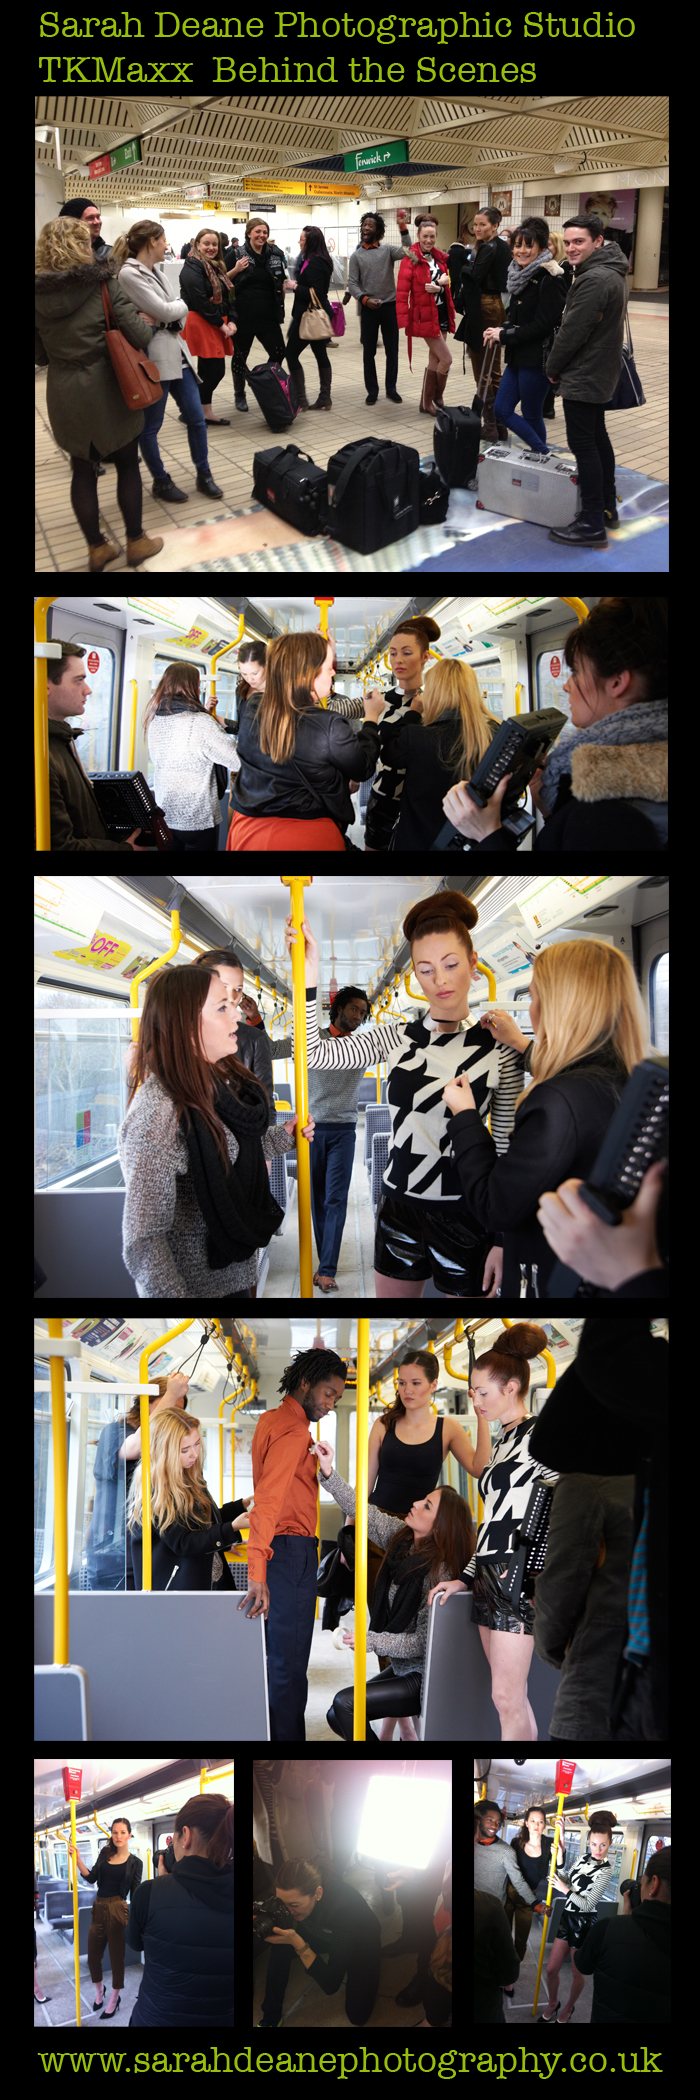 behind the scenes on TKMaxx fashion photoshoot on moving metro train carriage newcastle